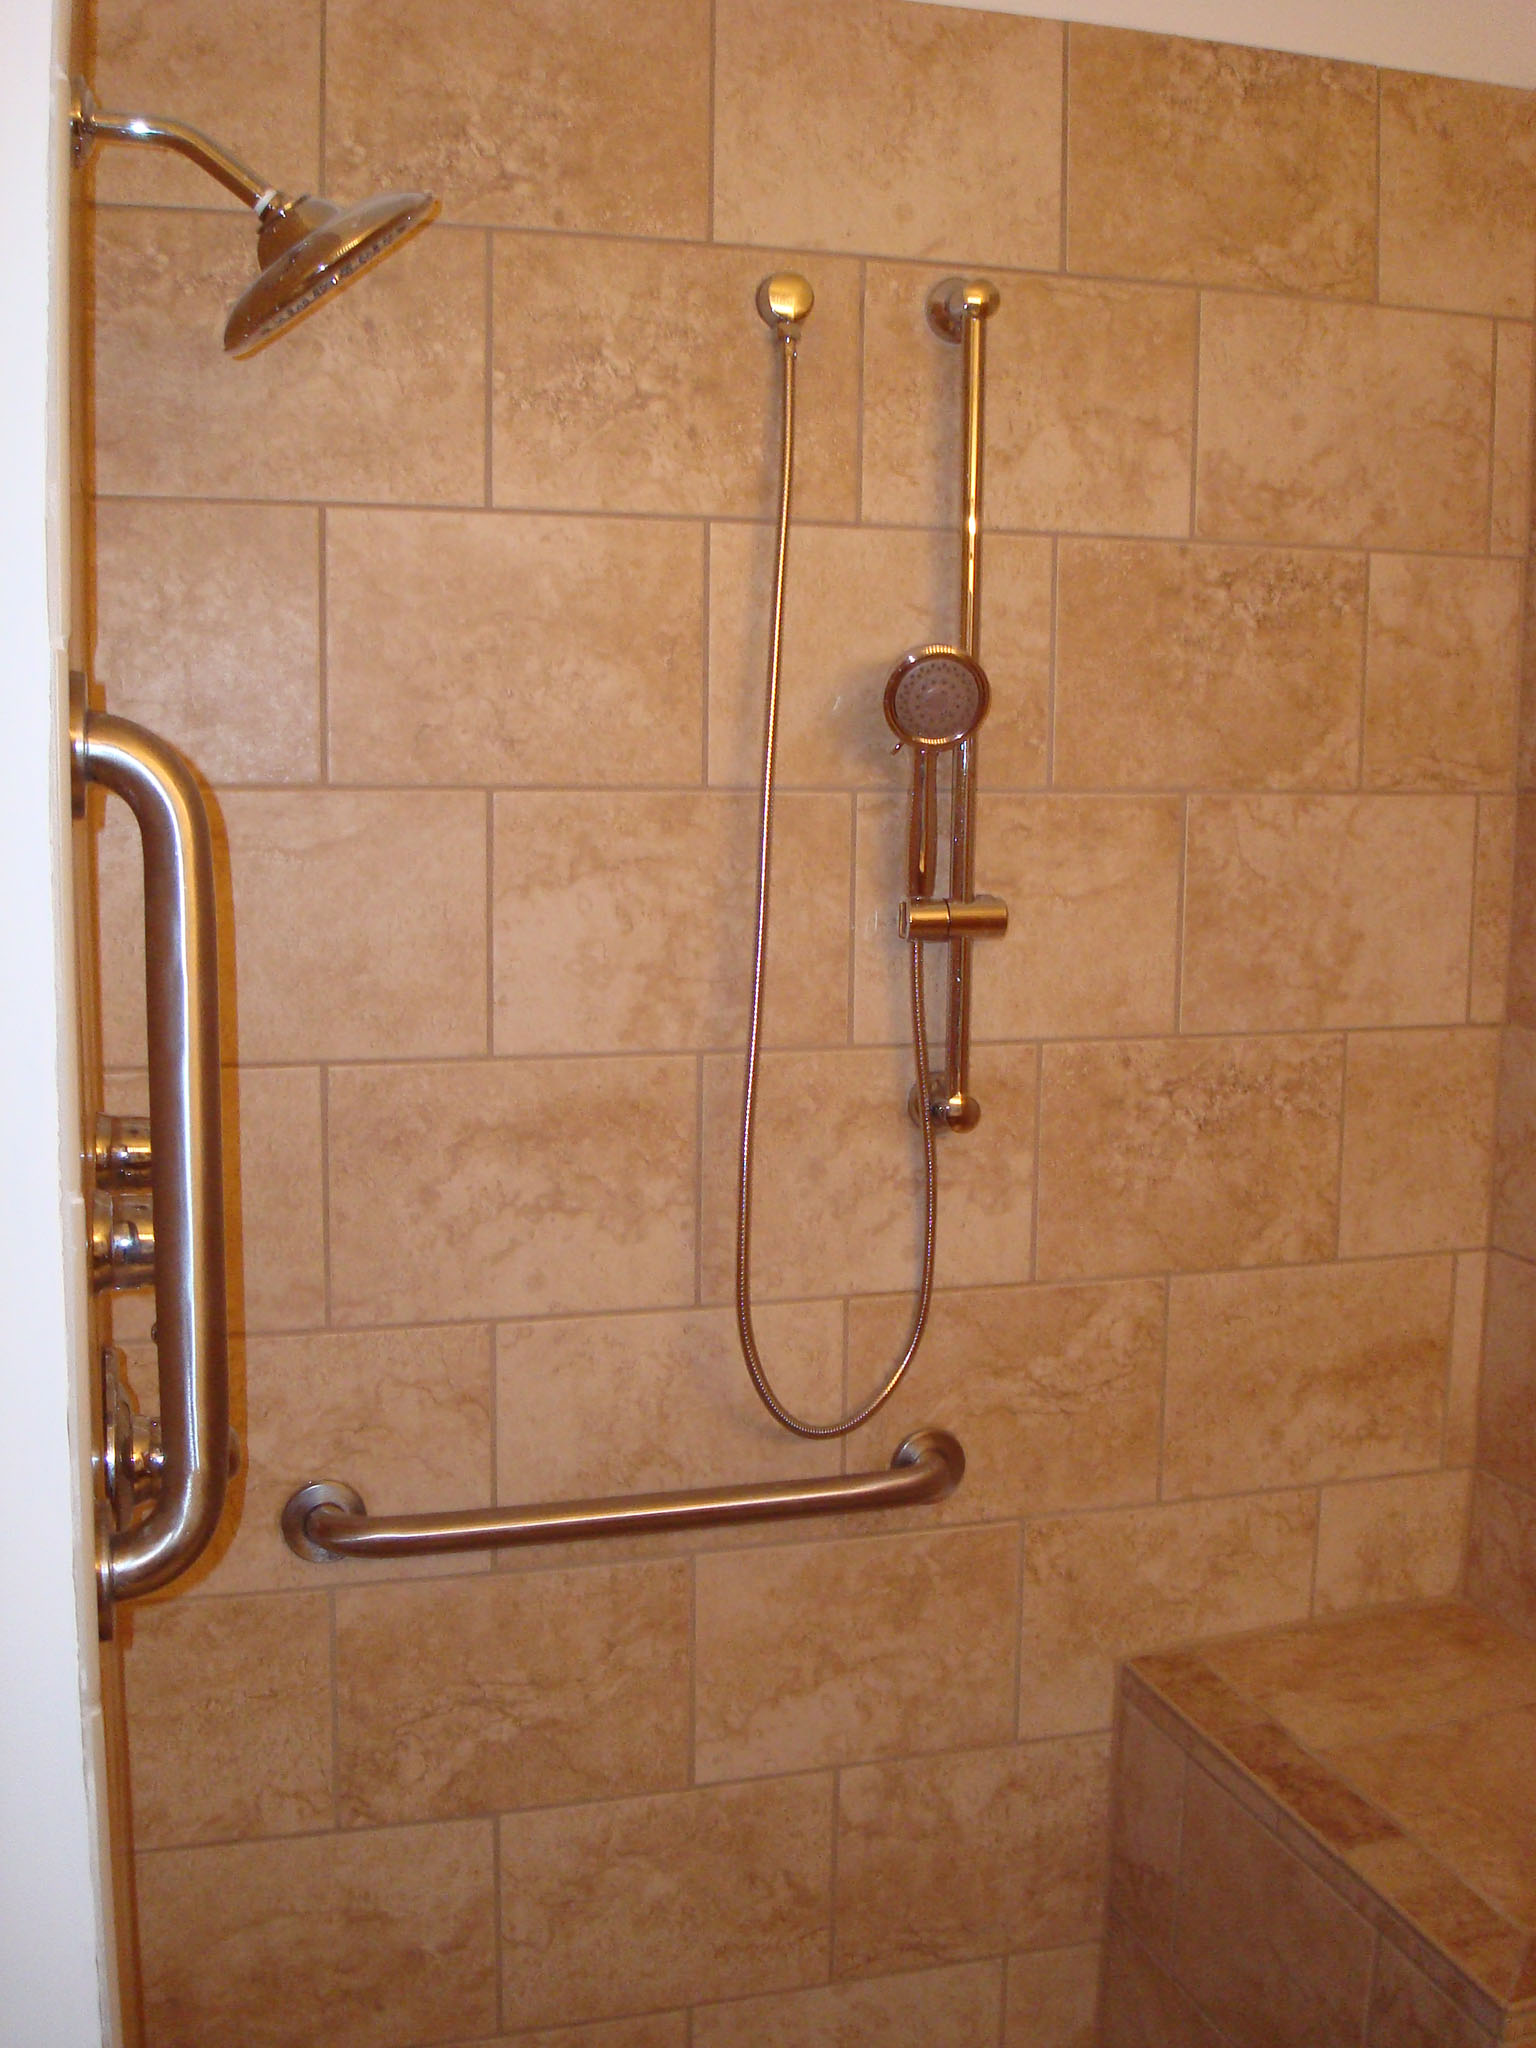 Handicap Bathroom Remodel Handicap Bathroom Remodel Halo Construction Services Llc